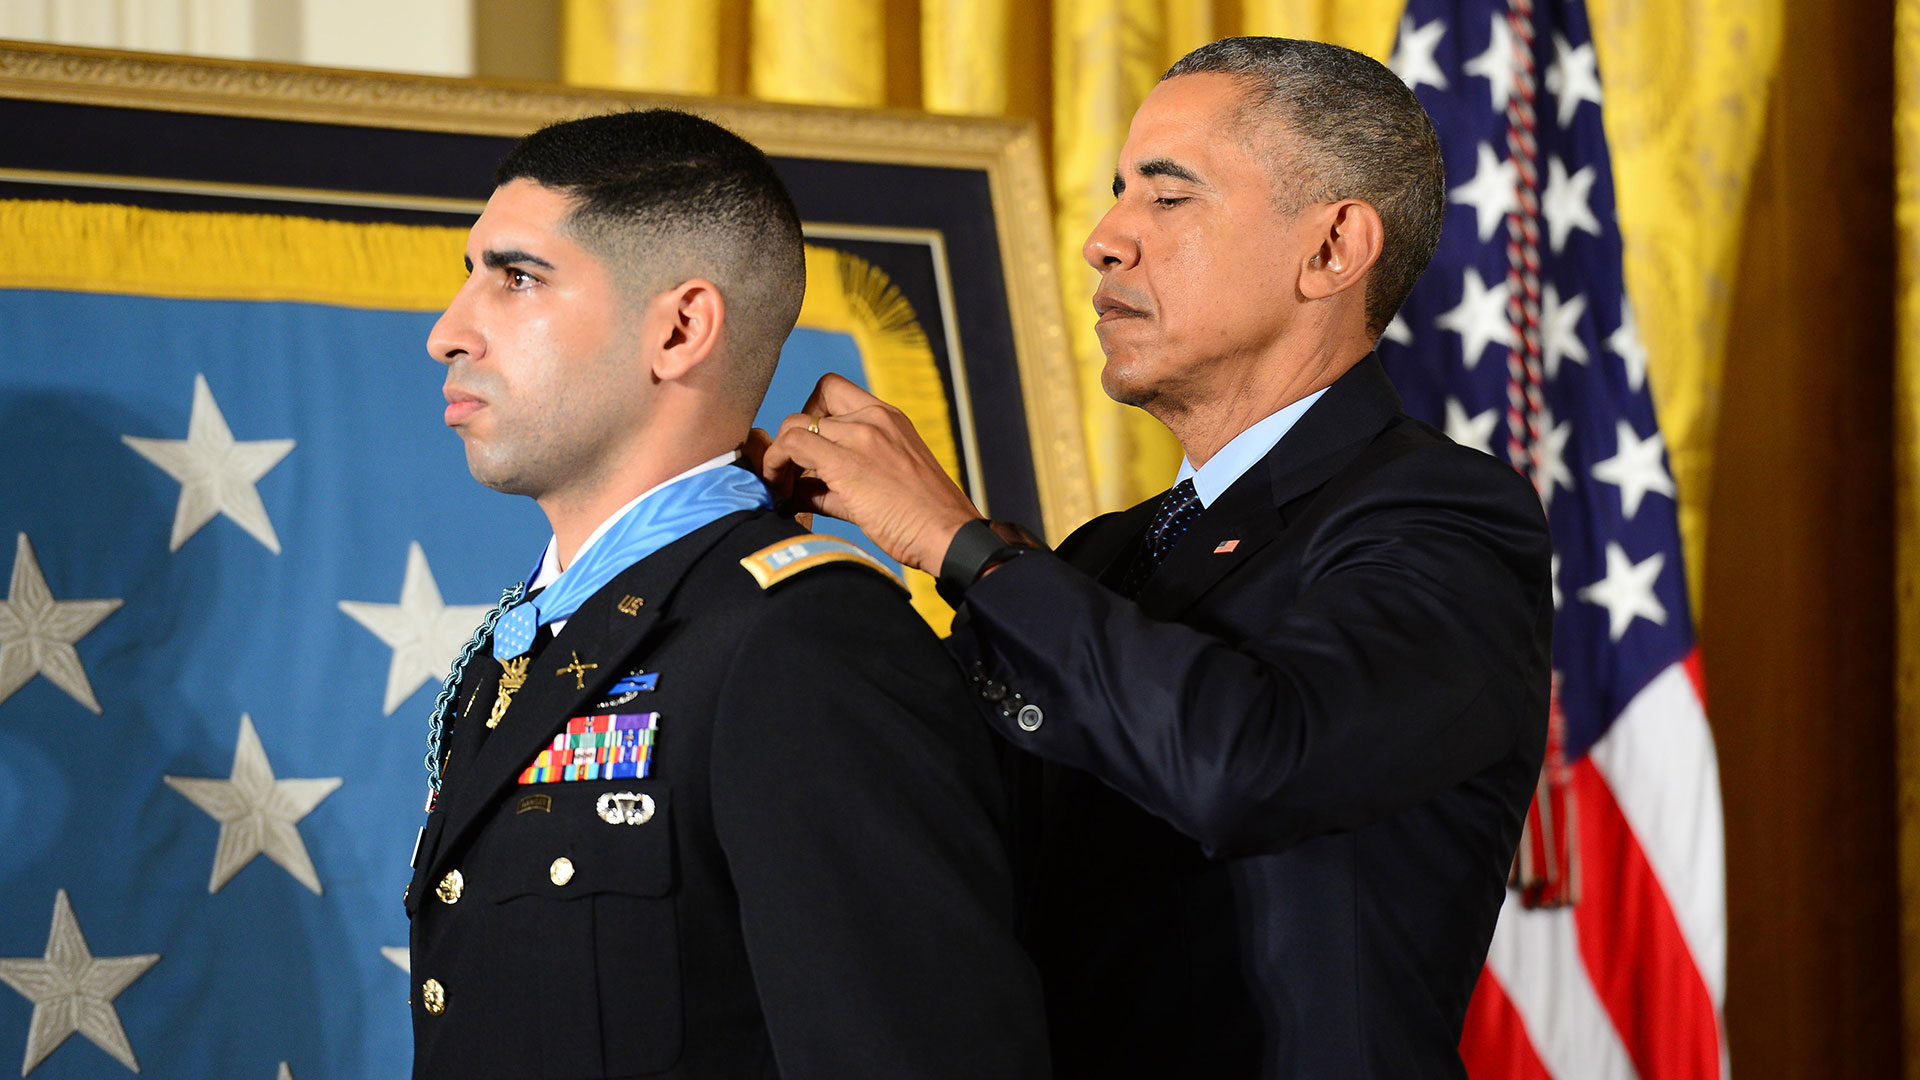 Obama giing an award to a soldier